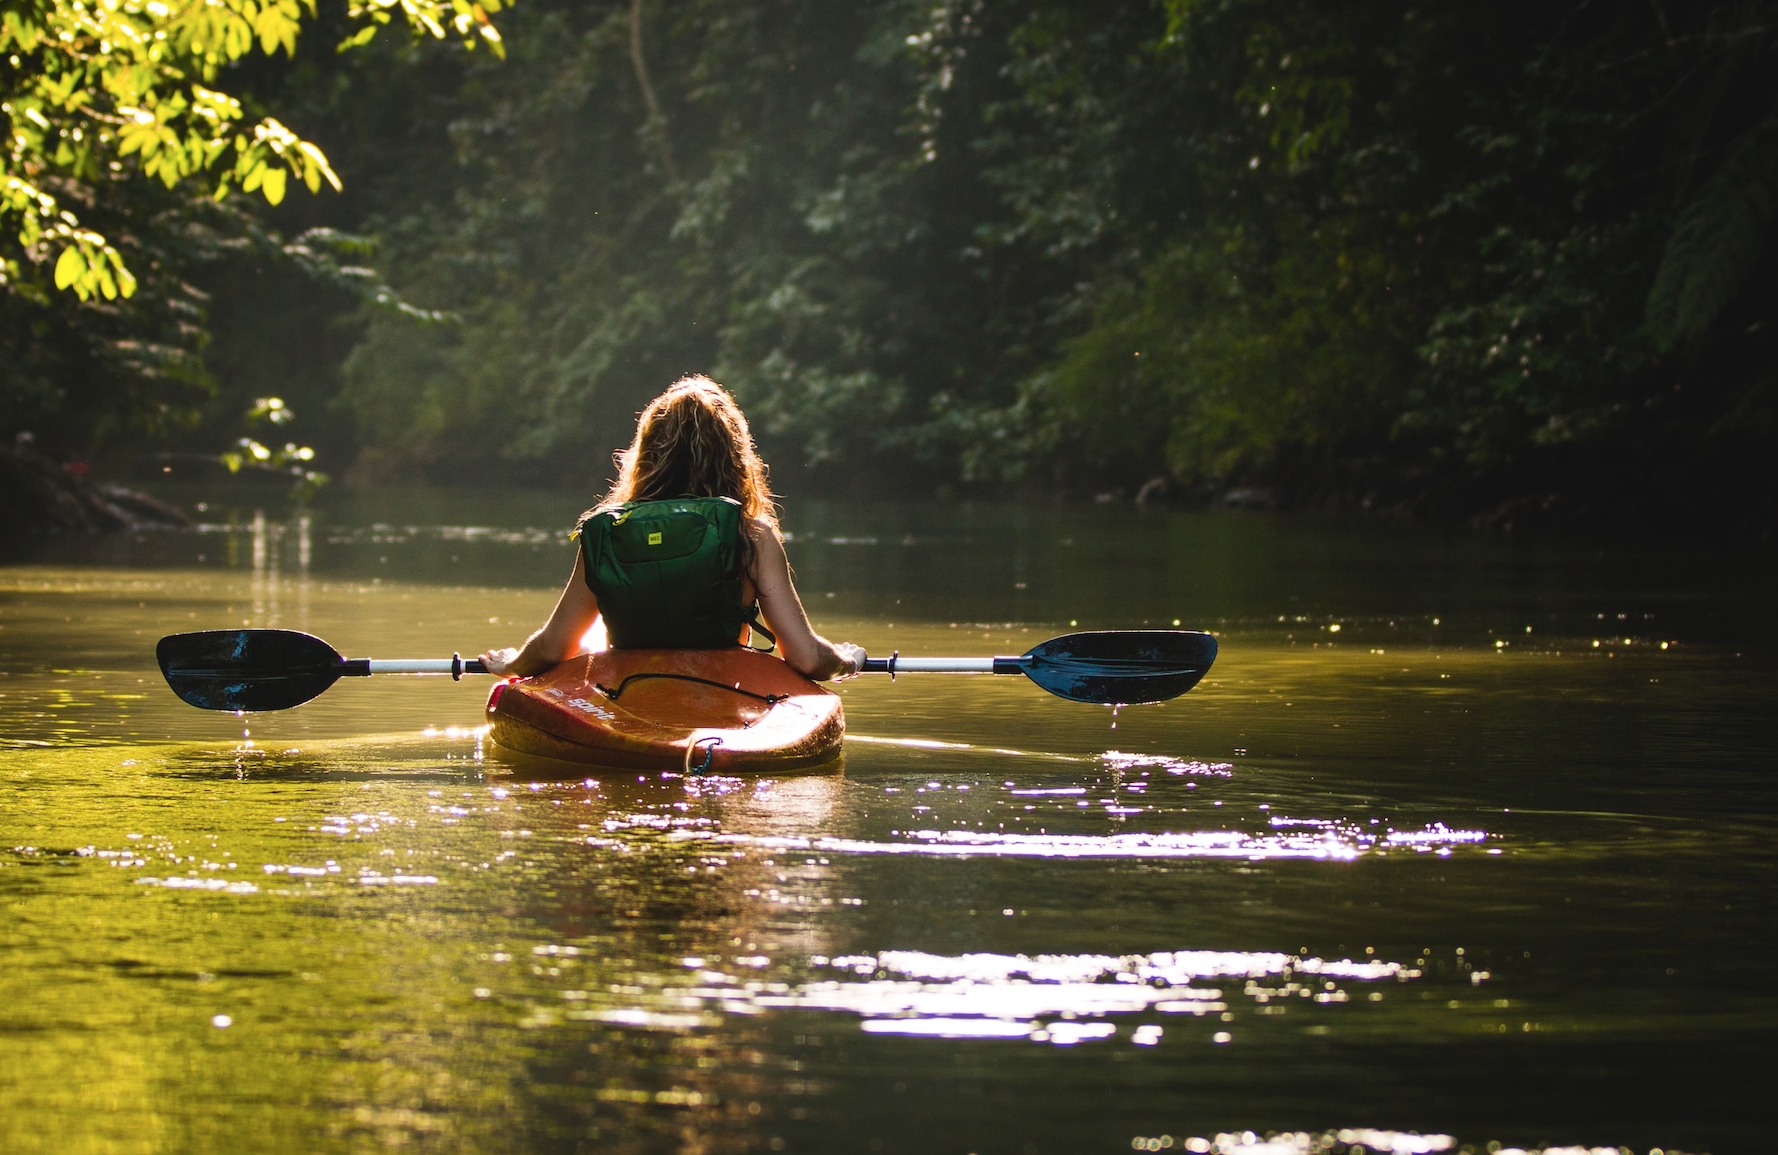 Learn More About Kayaking